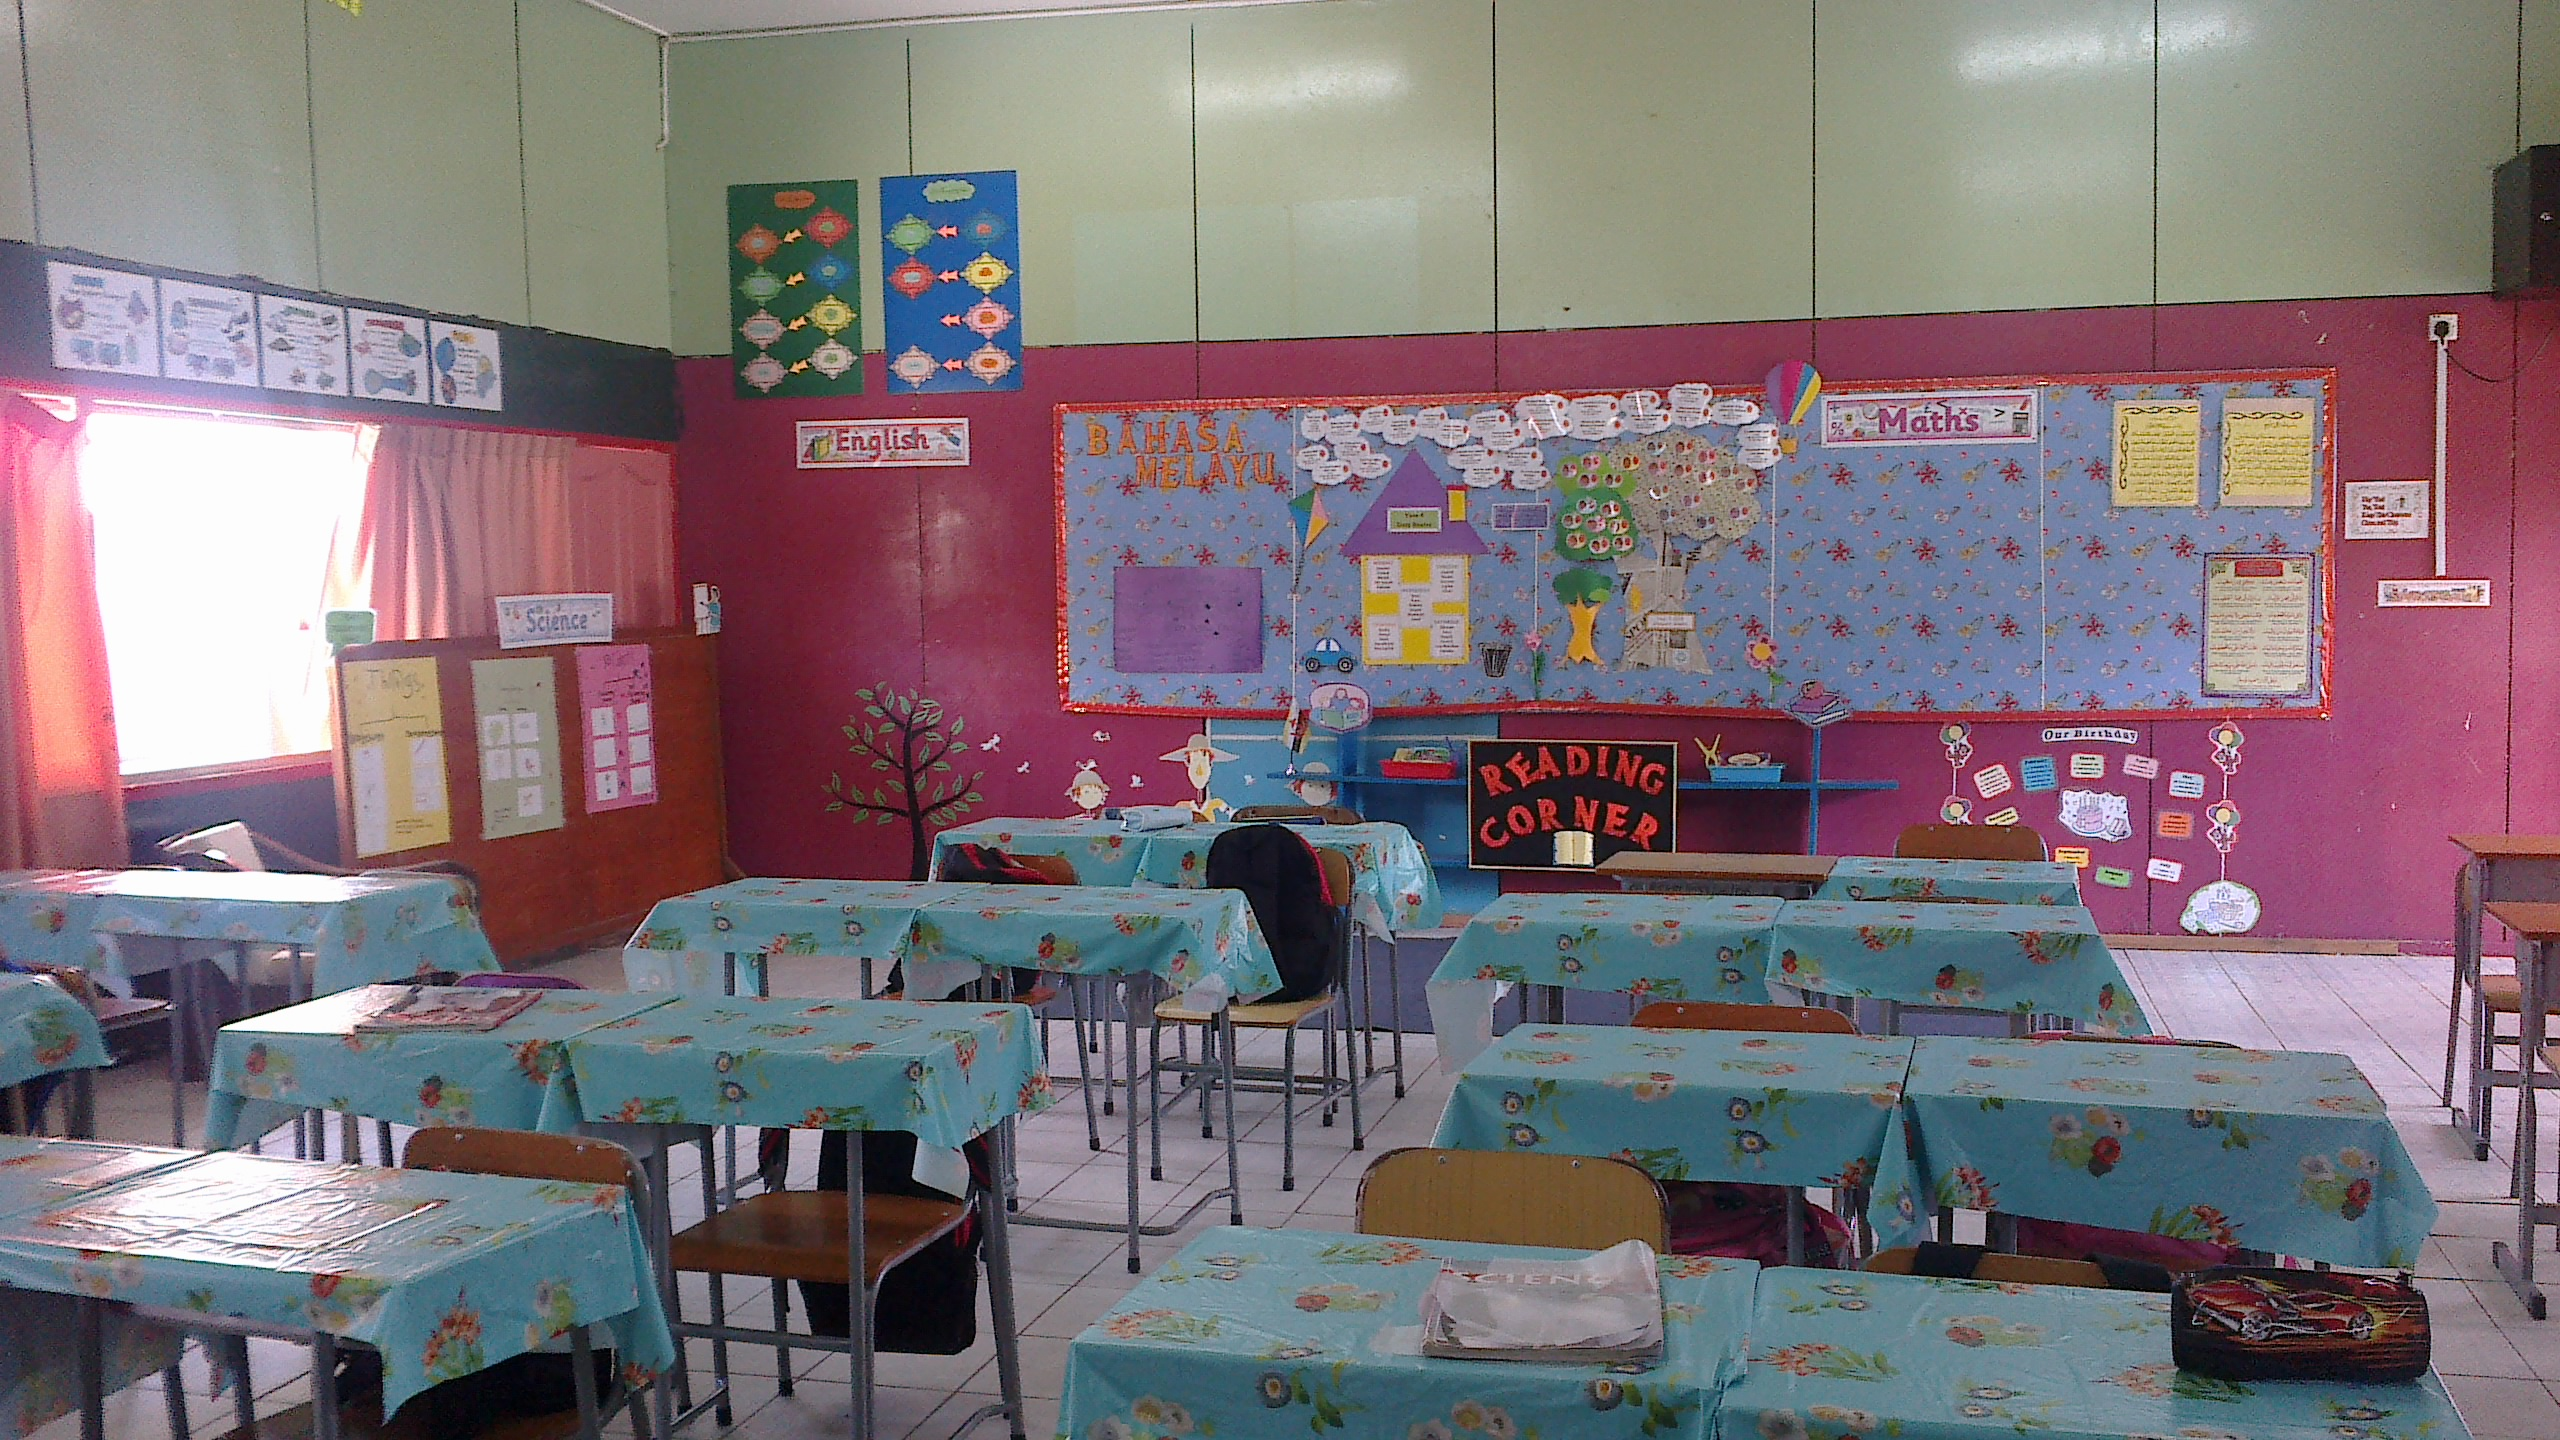 Classroom Design For Primary School ~ Classrooms of the world daily edventures